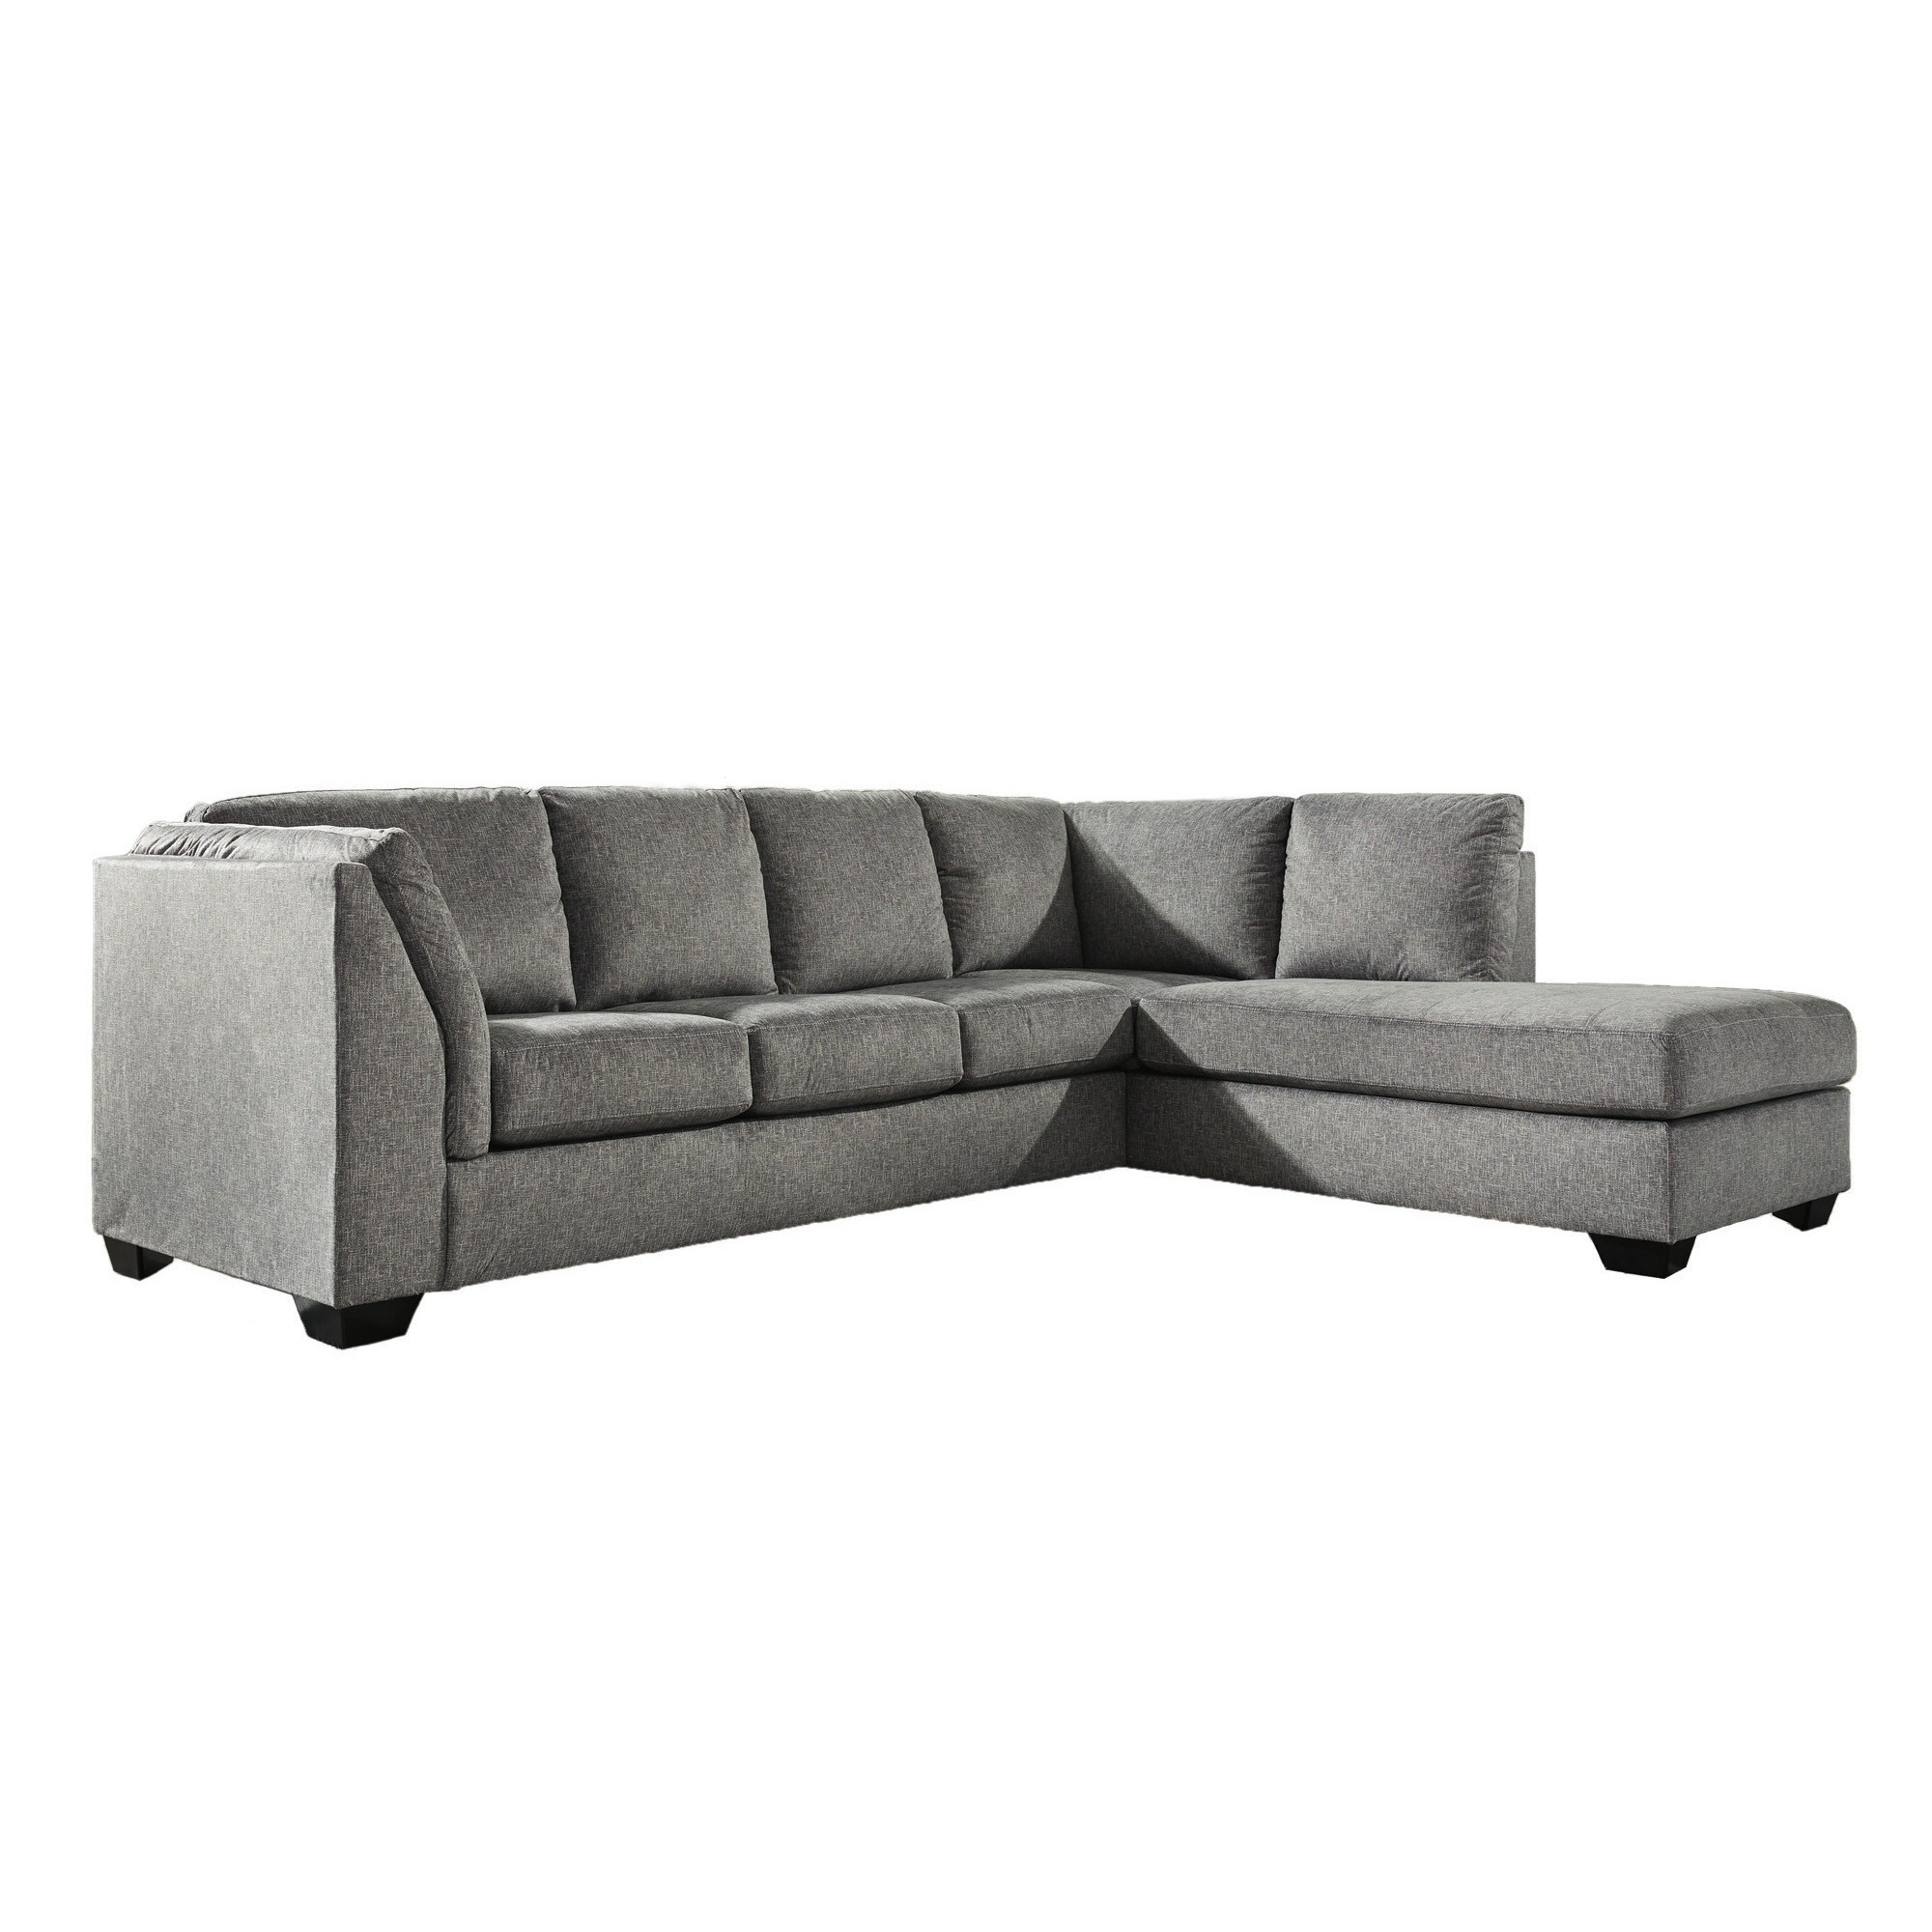 Tepperman's With Regard To Teppermans Sectional Sofas (View 12 of 20)